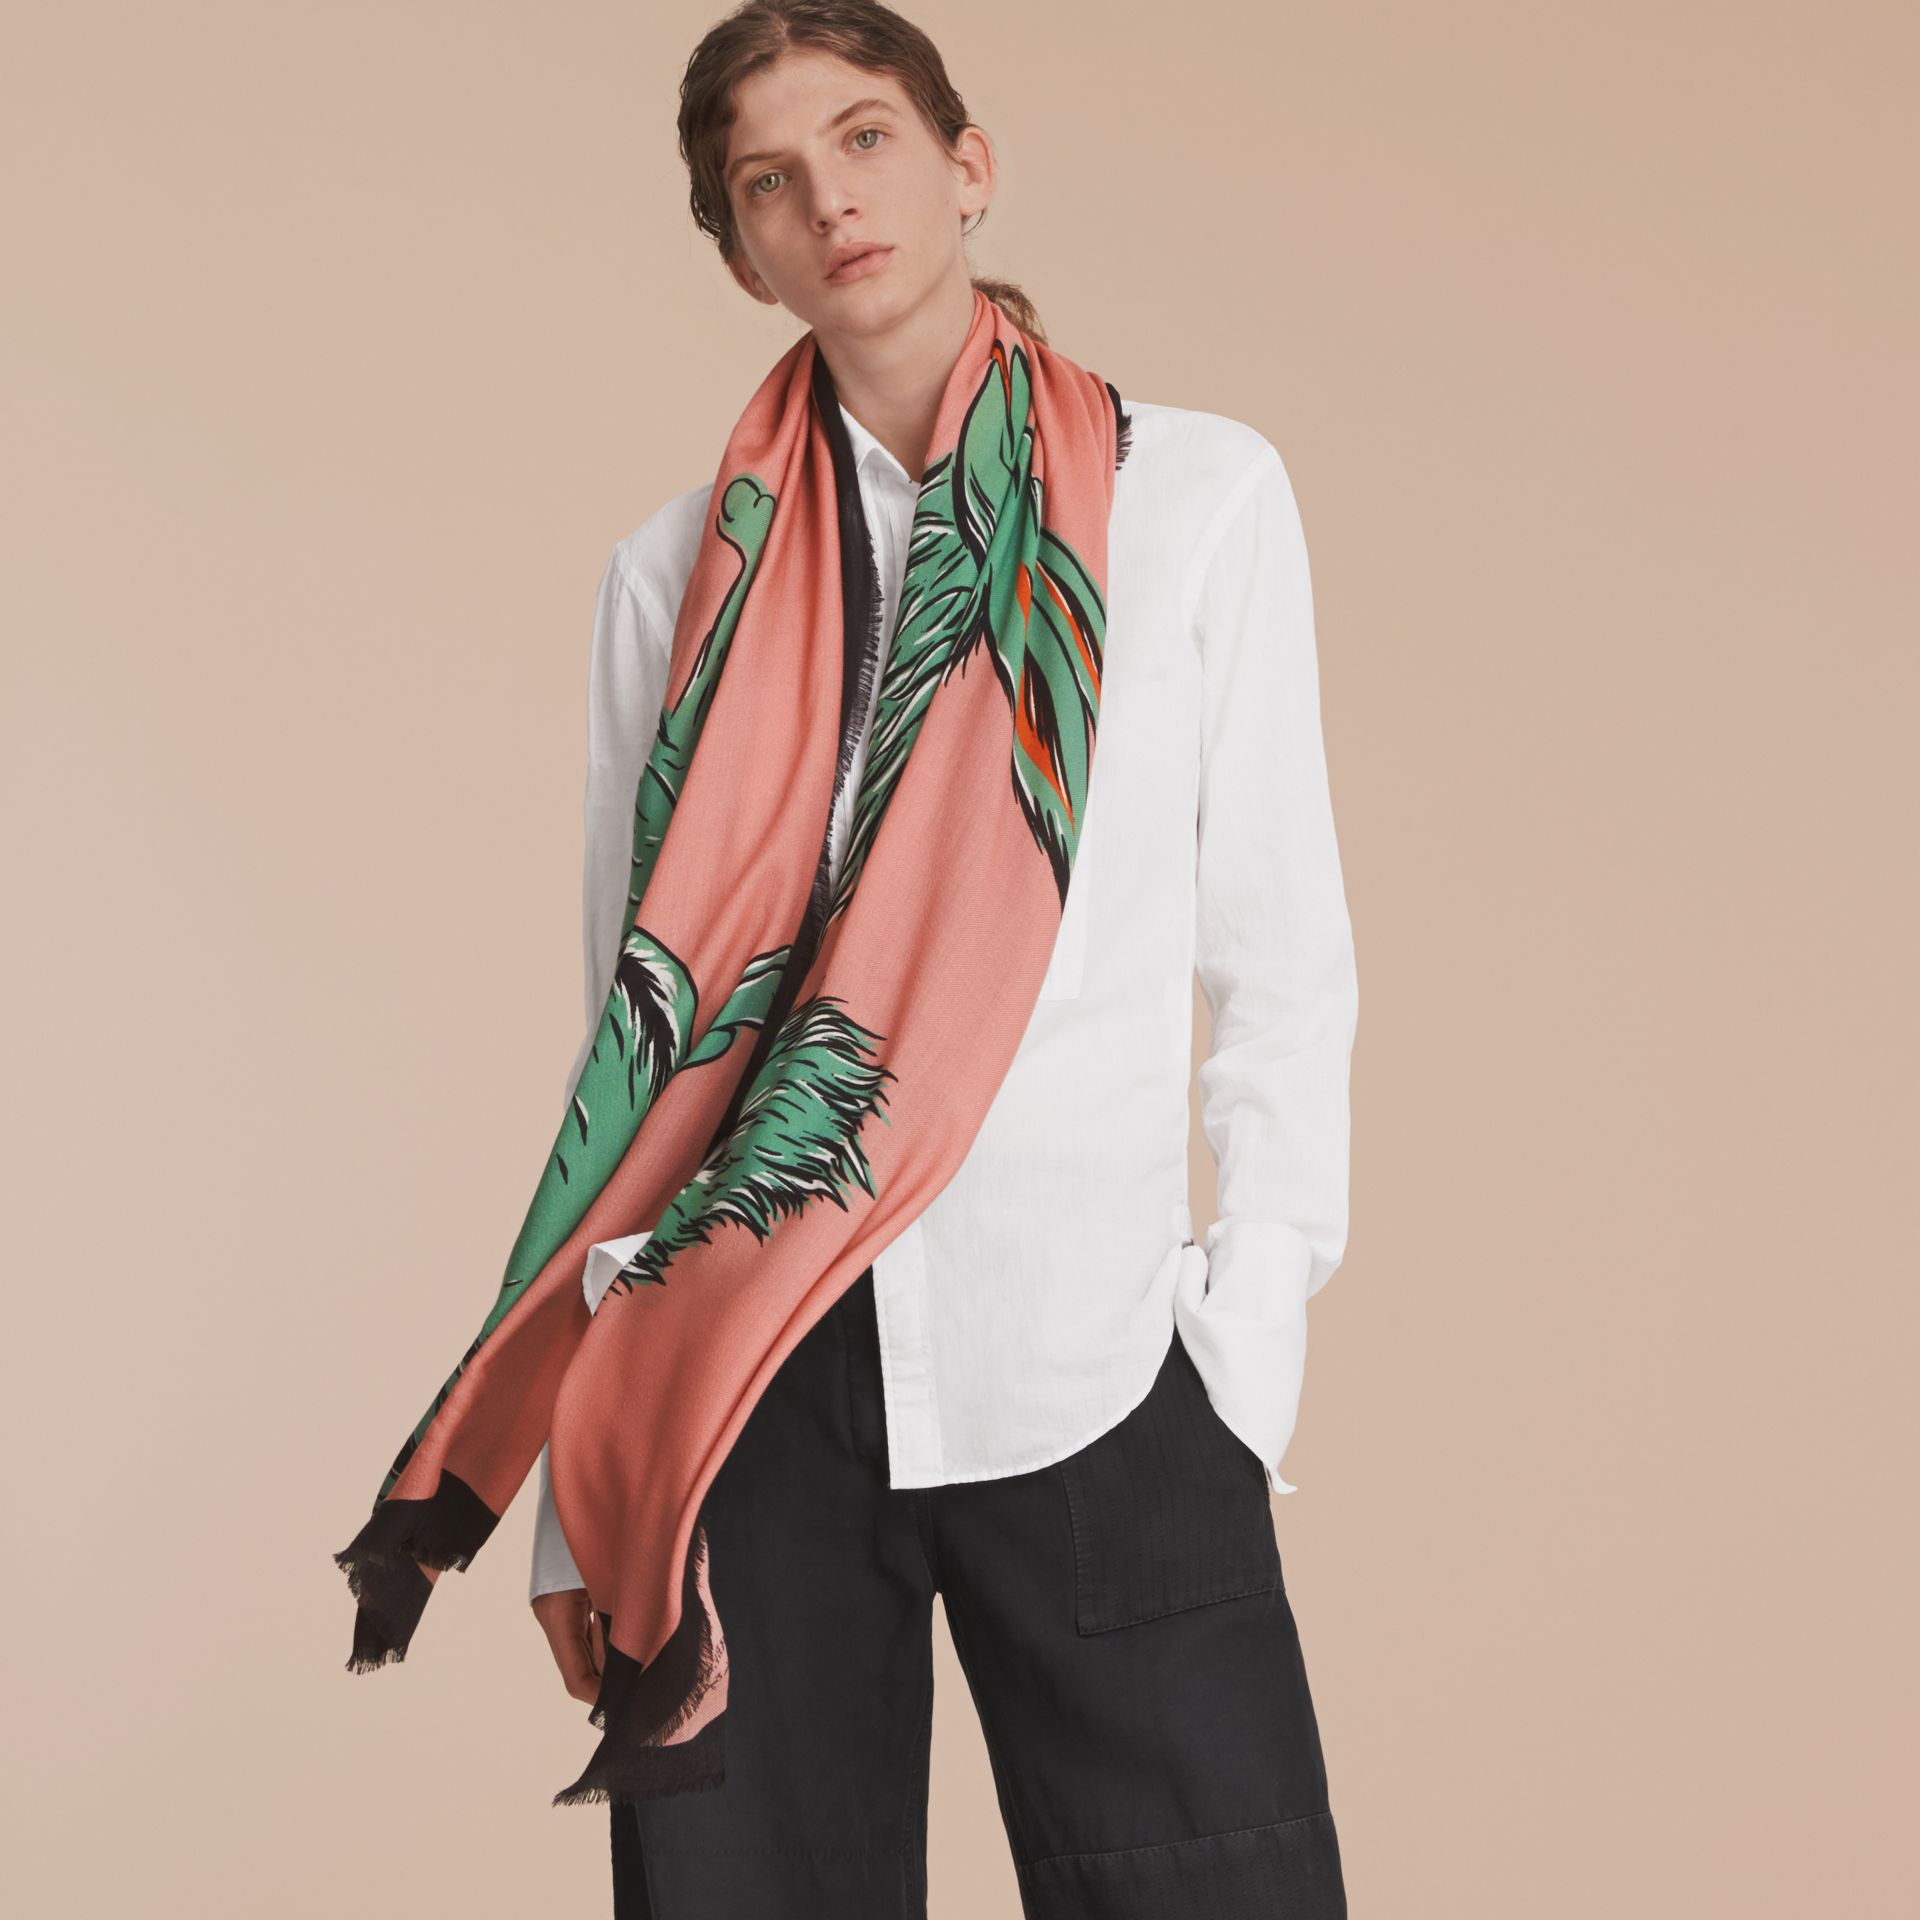 Beasts Print Lightweight Cashmere Scarf in Blossom Pink - Women | Burberry - gallery image 3